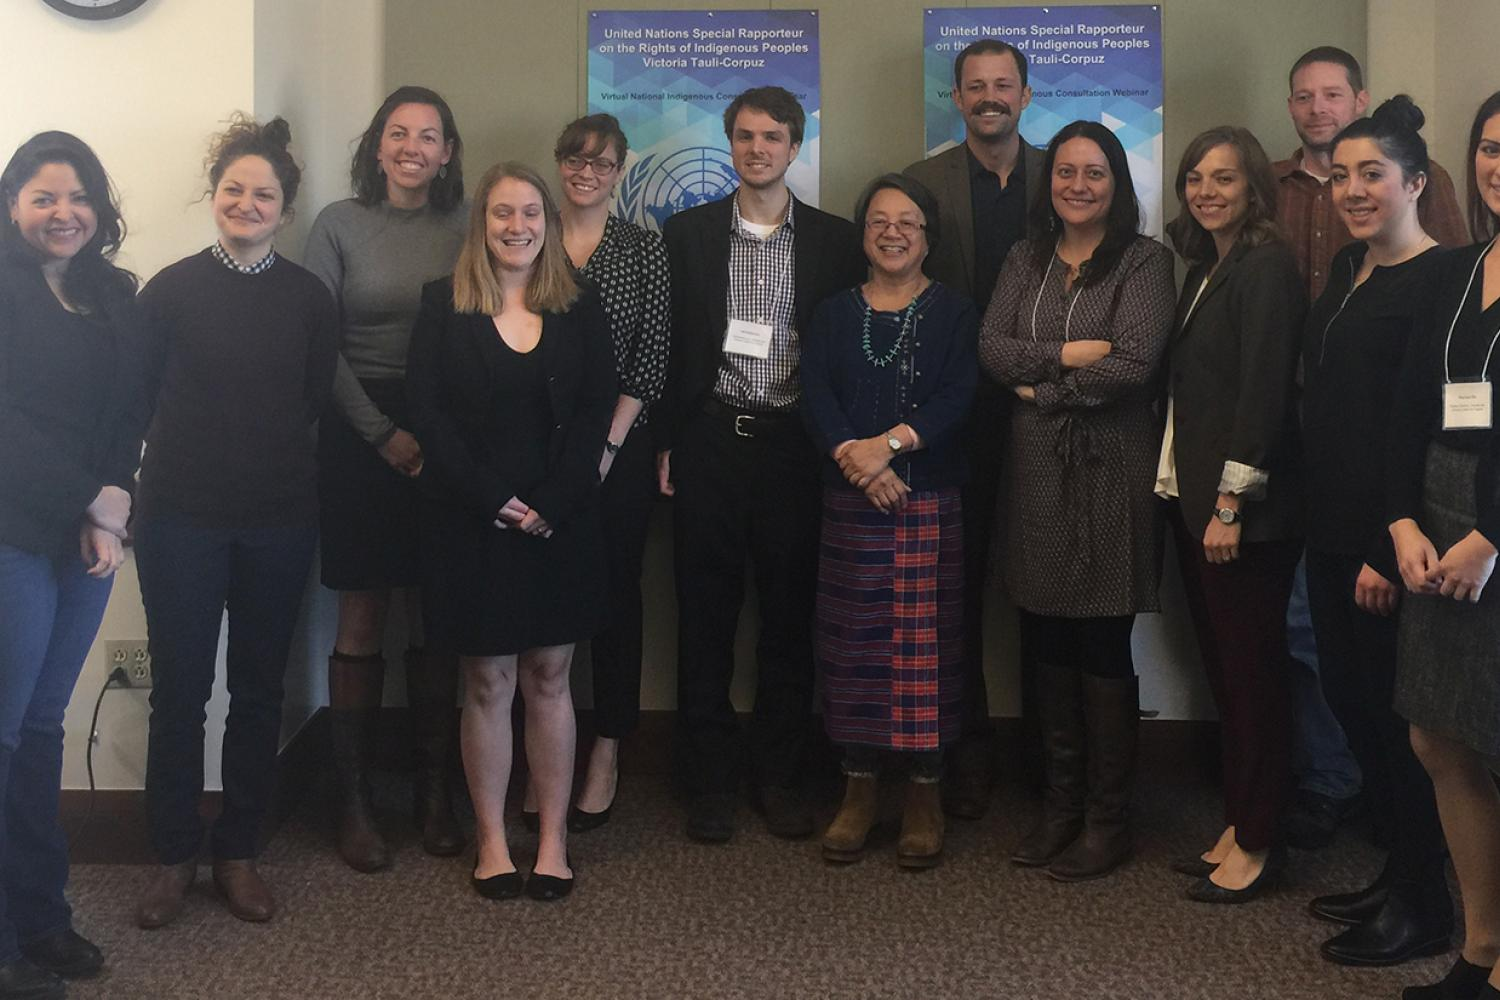 Colorado Law students, faculty, and staff meet with UN Special Rapporteur on the Rights of Indigenous Peoples